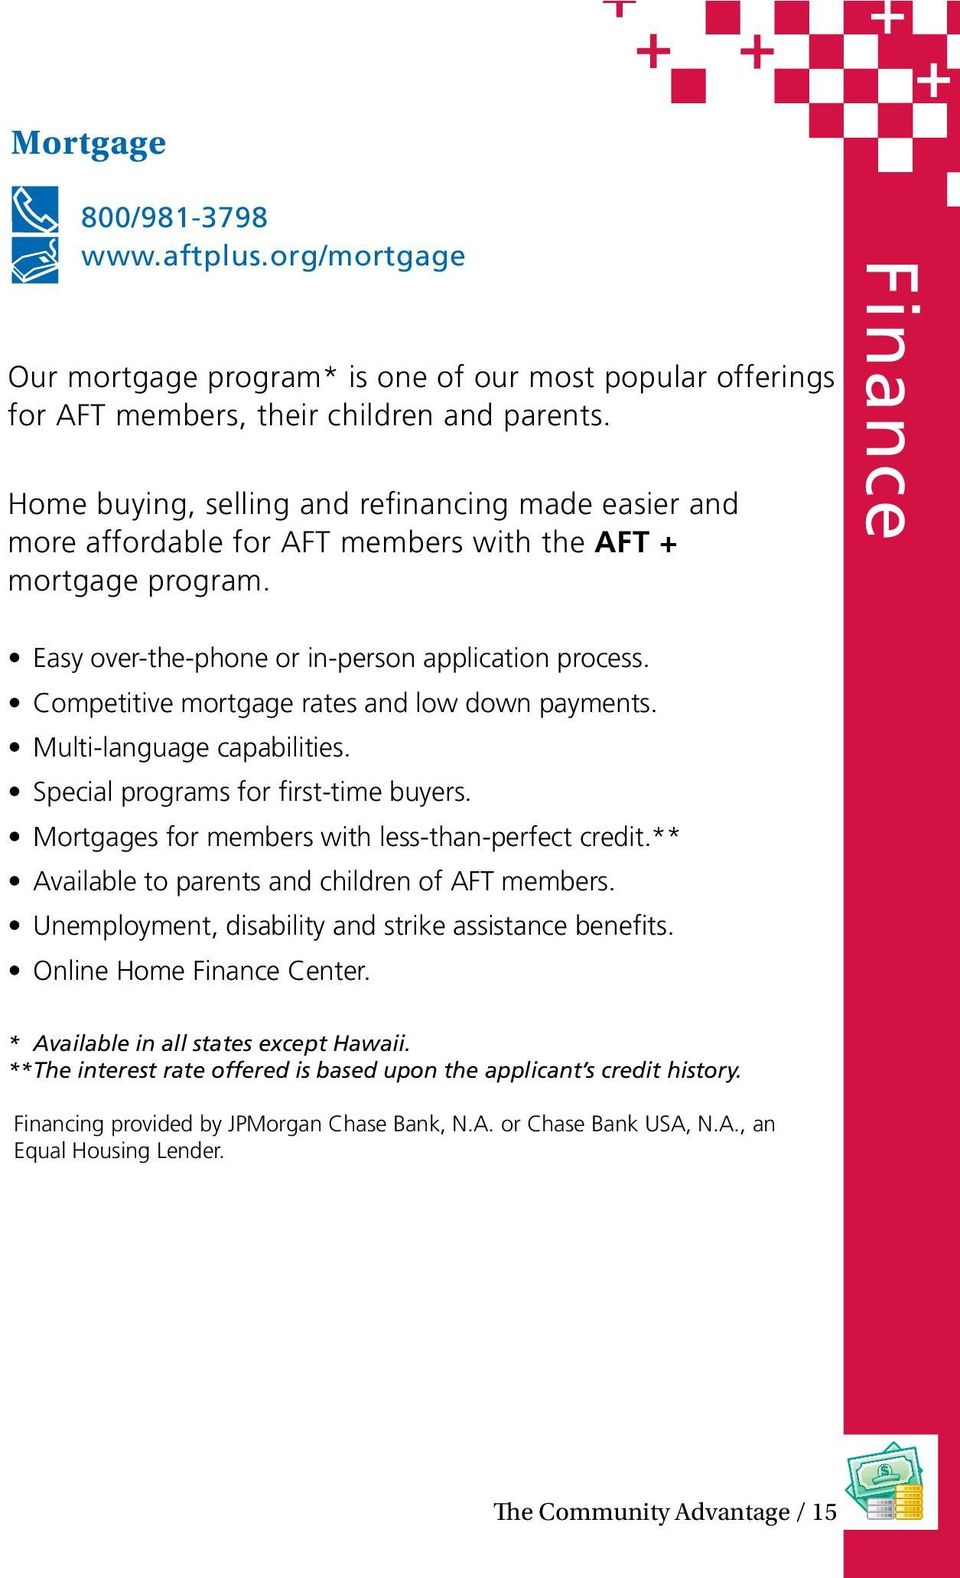 Competitive mortgage rates and low down payments. Multi-language capabilities. Special programs for first-time buyers. Mortgages for members with less-than-perfect credit.